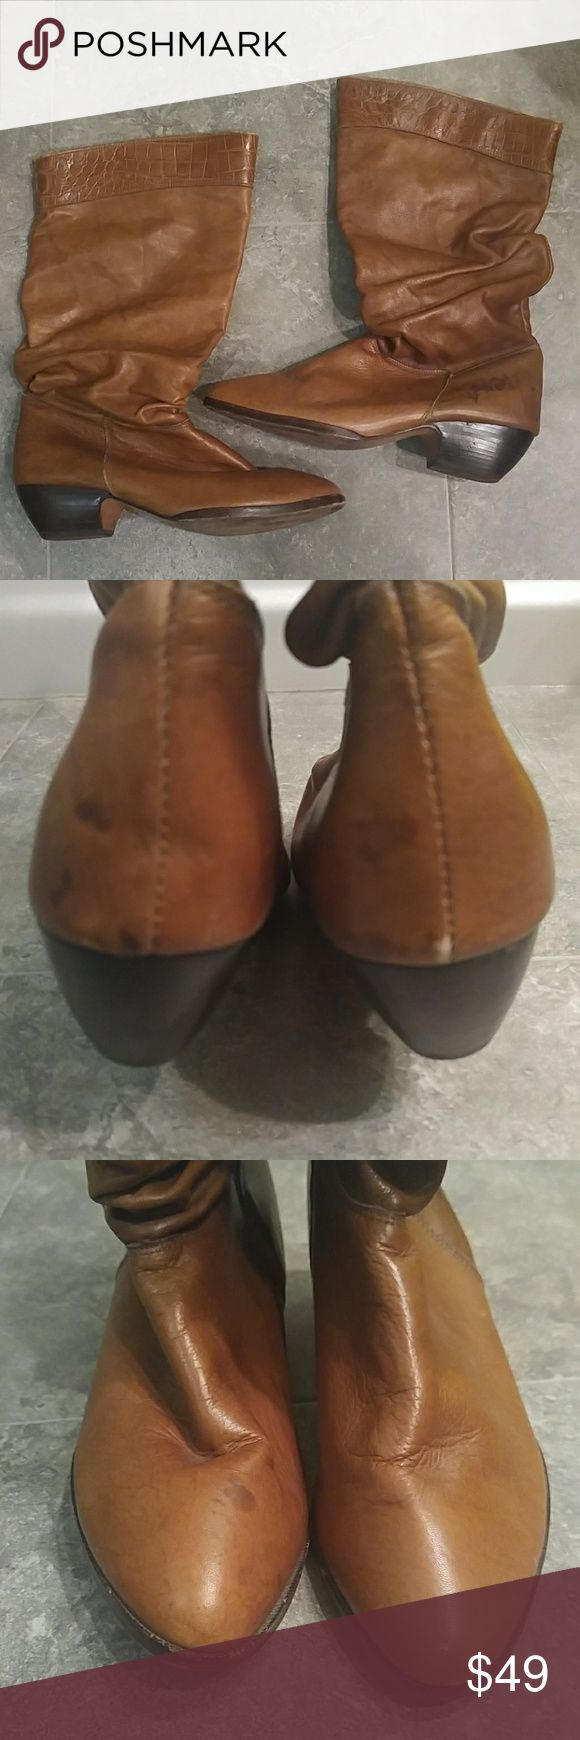 Vintage Genuine Leather Cognac Knee Boots Made in U.S.A. Size says 7 but fits like women's narrow 6-6.5. Small water stain at upper right toe & back left heel. Other than that, these are in excellent used vintage condition. *From smoke/fragrance/pet free home. No Trades/modeling* Vintage Shoes Heeled Boots